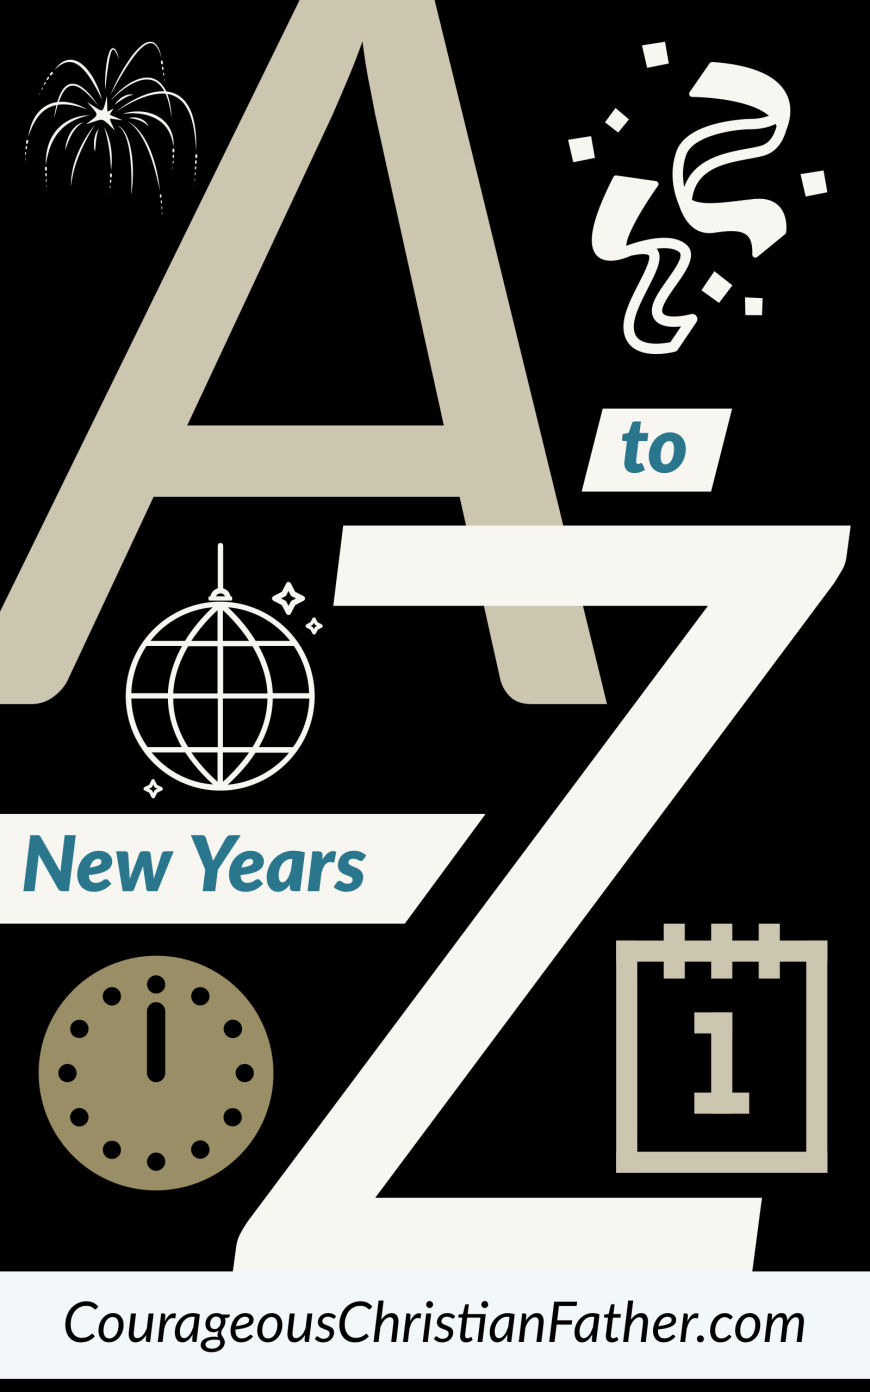 A-Z of New Years - Here is an A to Z list of things related to New Years. #NewYears